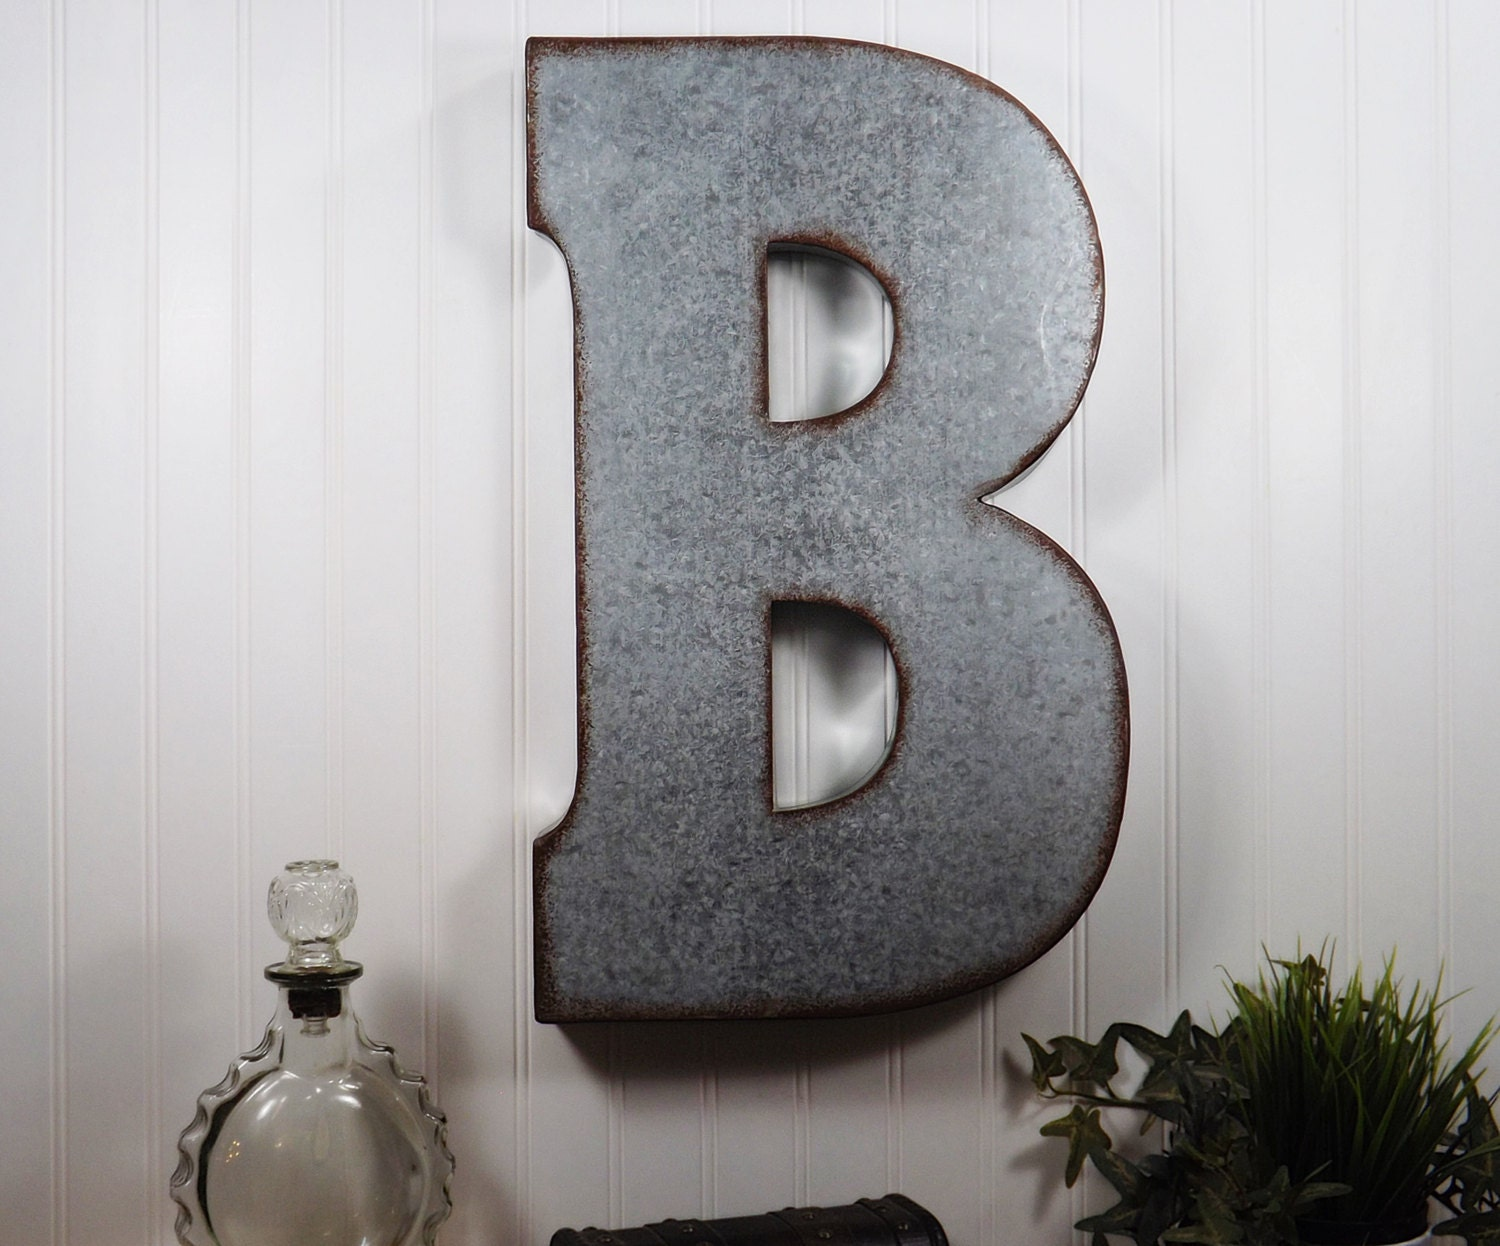 metal letters home decor large metal letter 20 inch metal letter wall decor 23627 | il fullxfull.886185971 mcbb